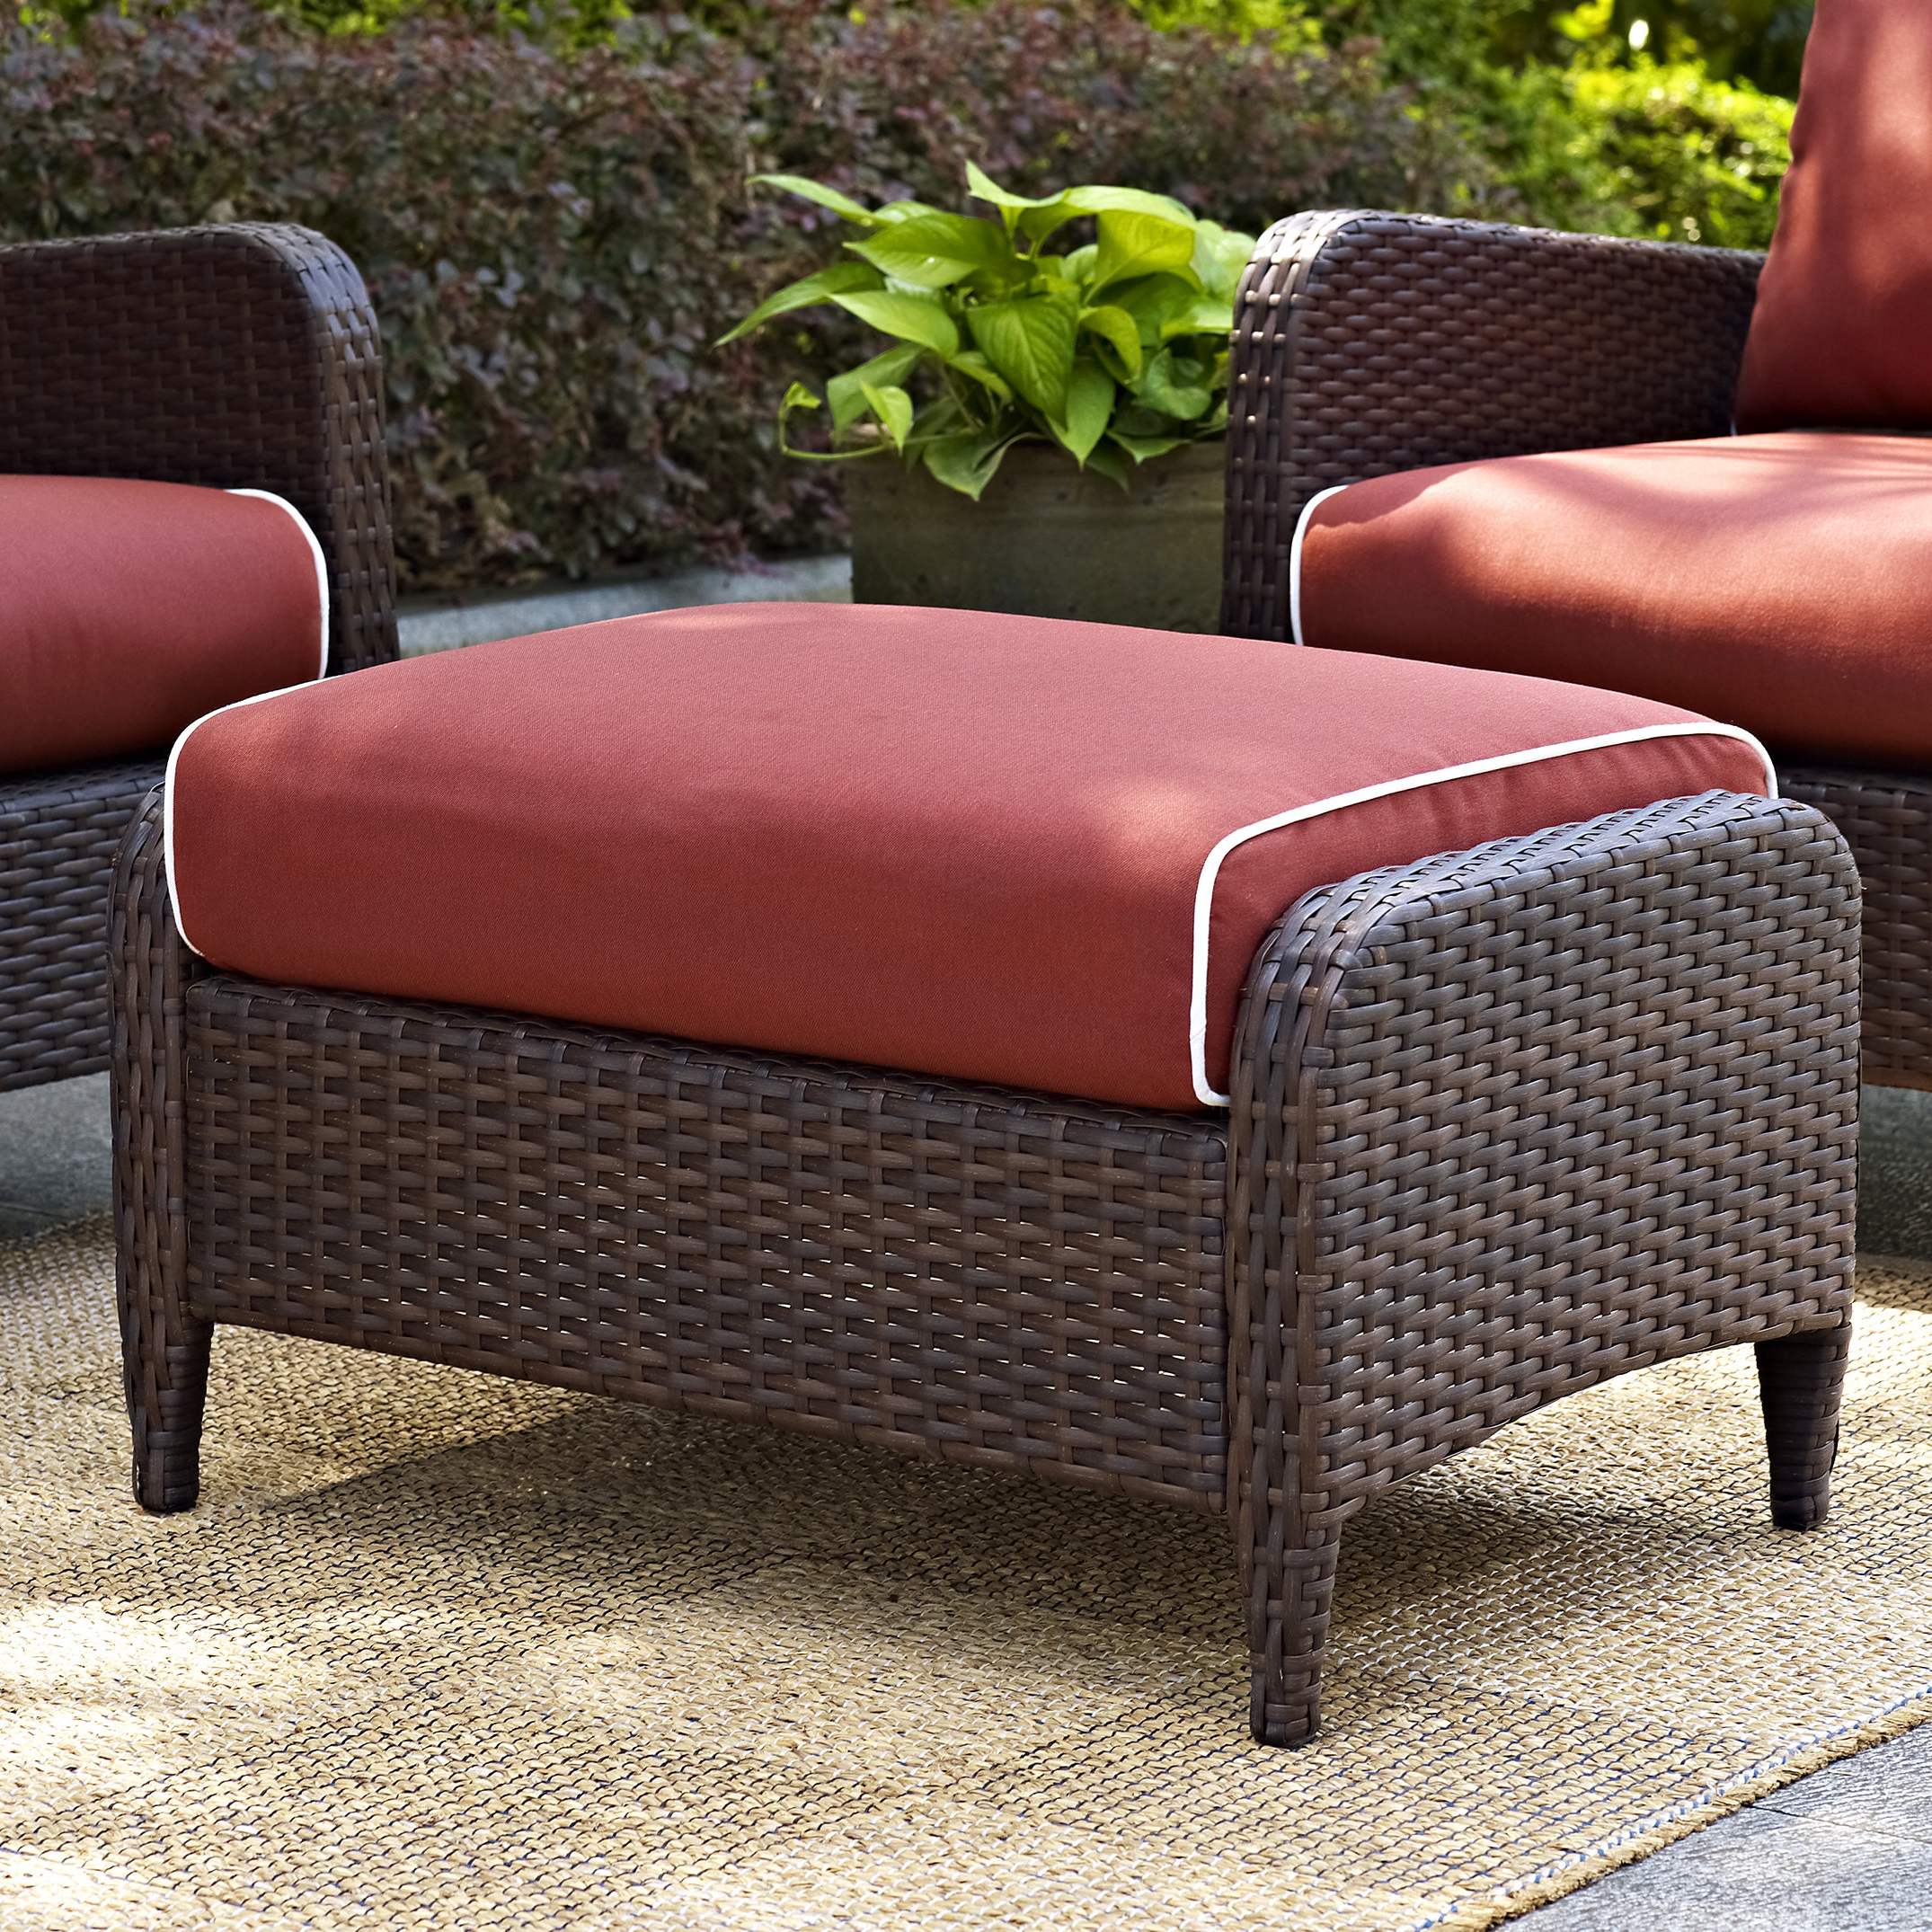 Avadi Outdoor Sofas & Ottomans 3 Piece Set Intended For Most Up To Date Mosca Ottoman With Cushion (View 7 of 25)